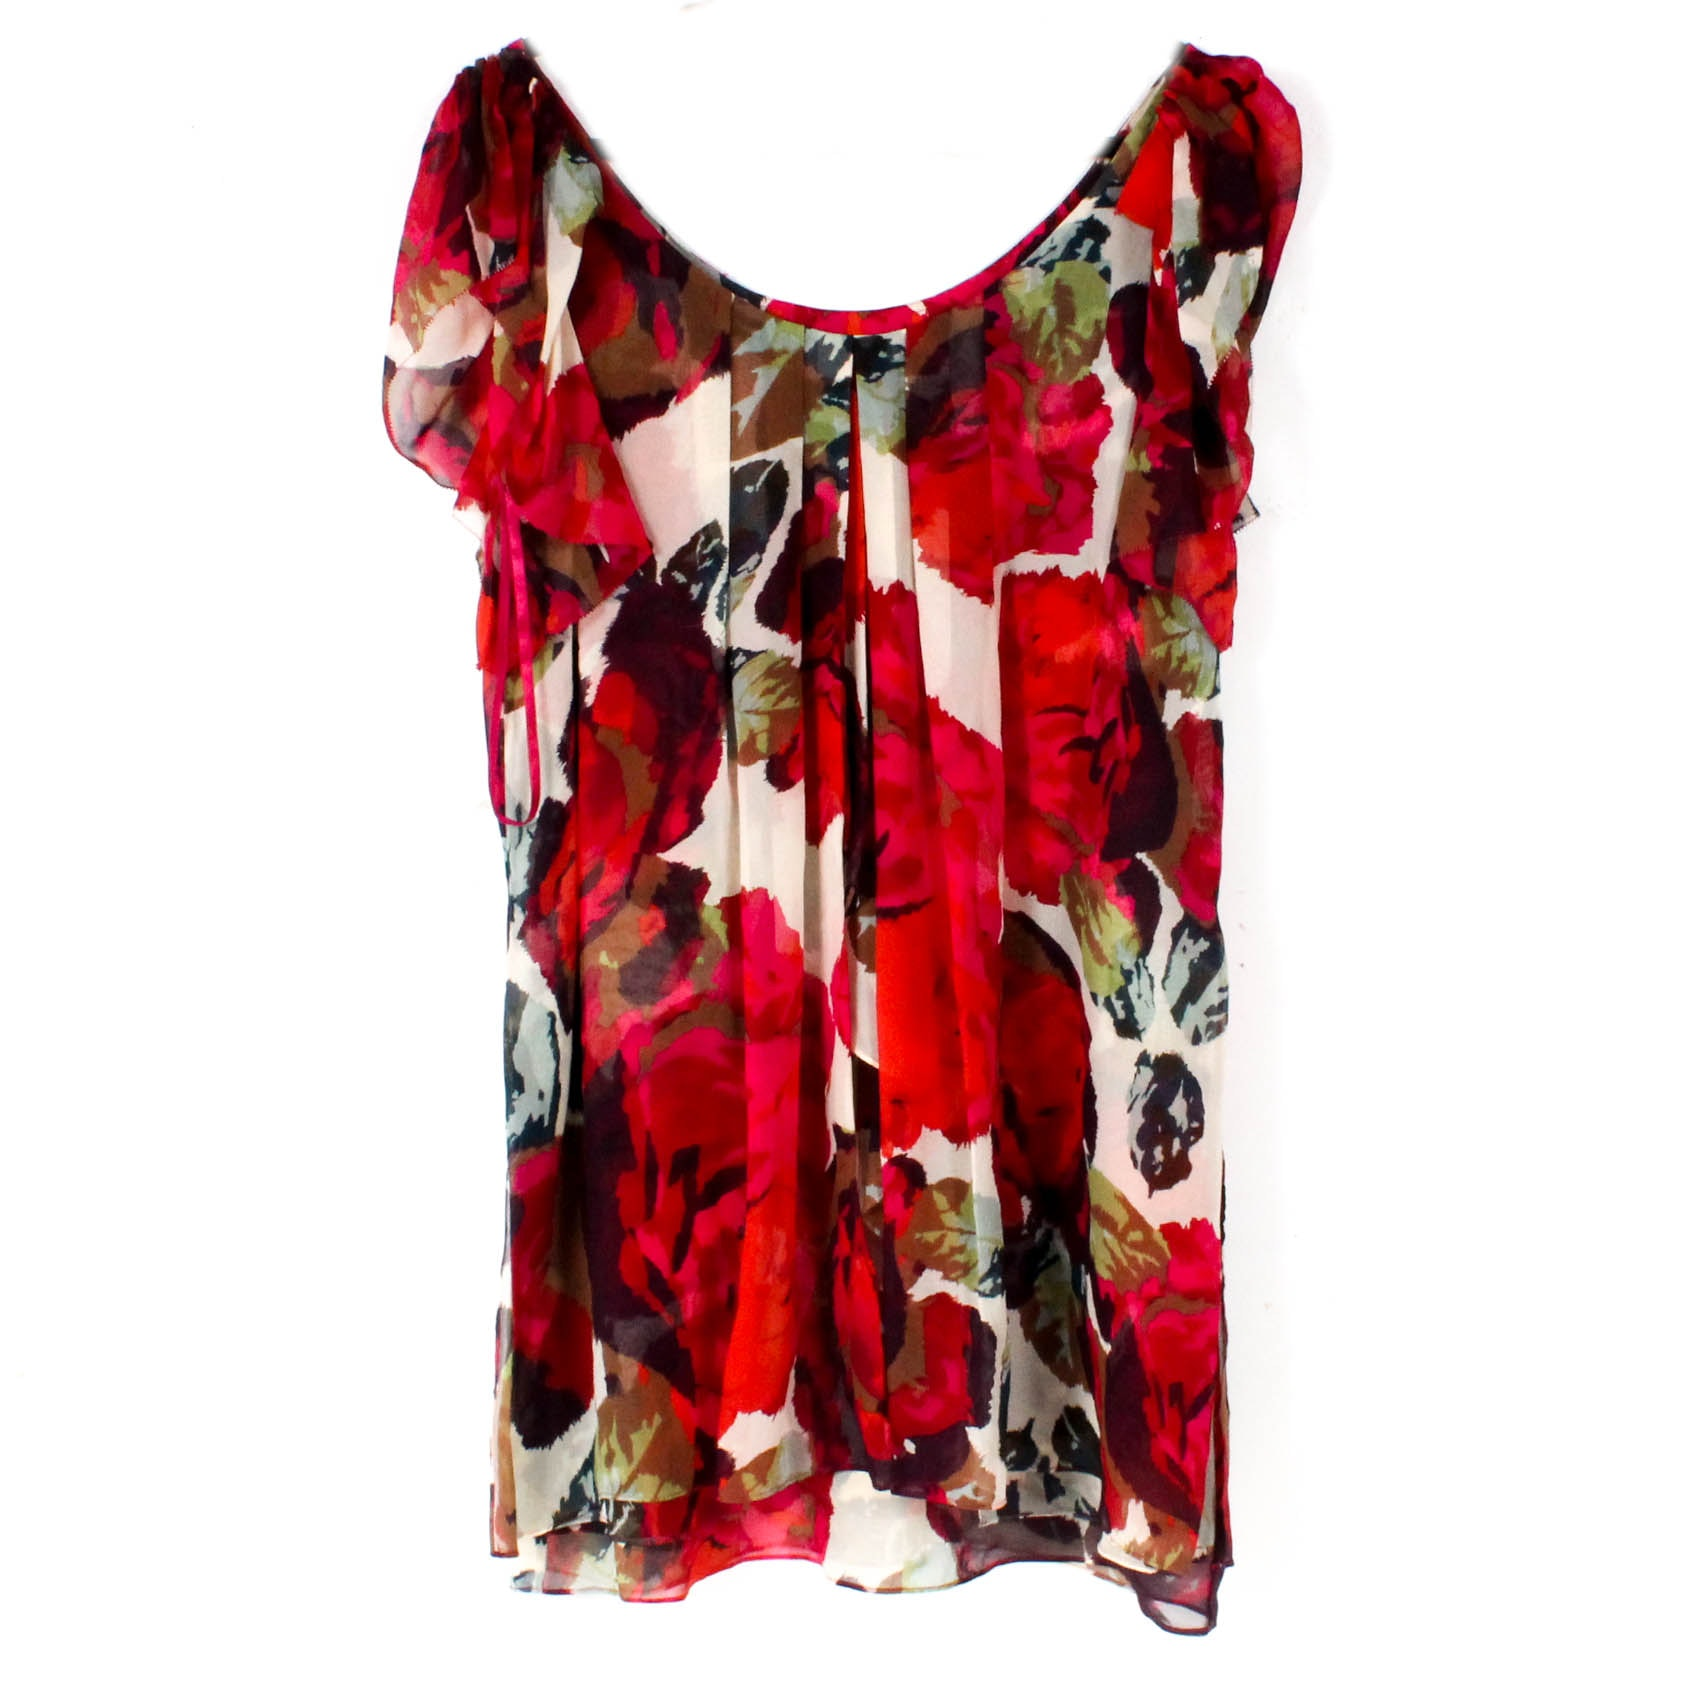 Diane von Furstenberg Silk Chiffon Mini Shift Dress